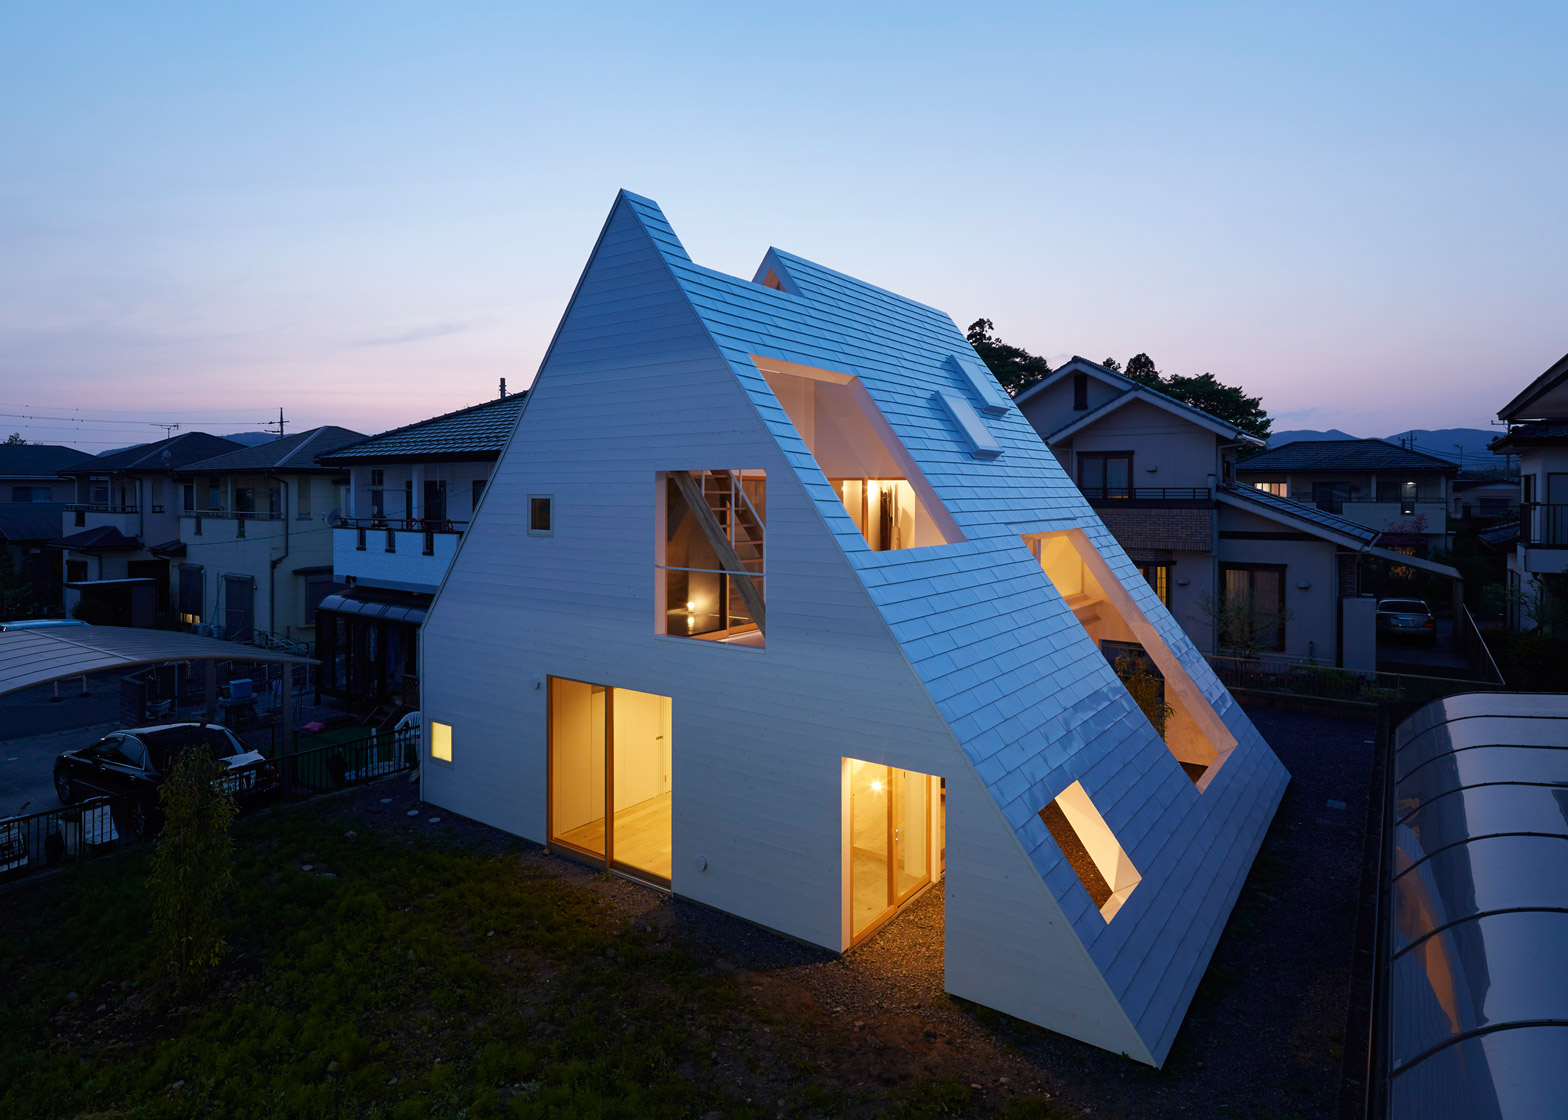 10 houses featuring excessively steep gable roofs